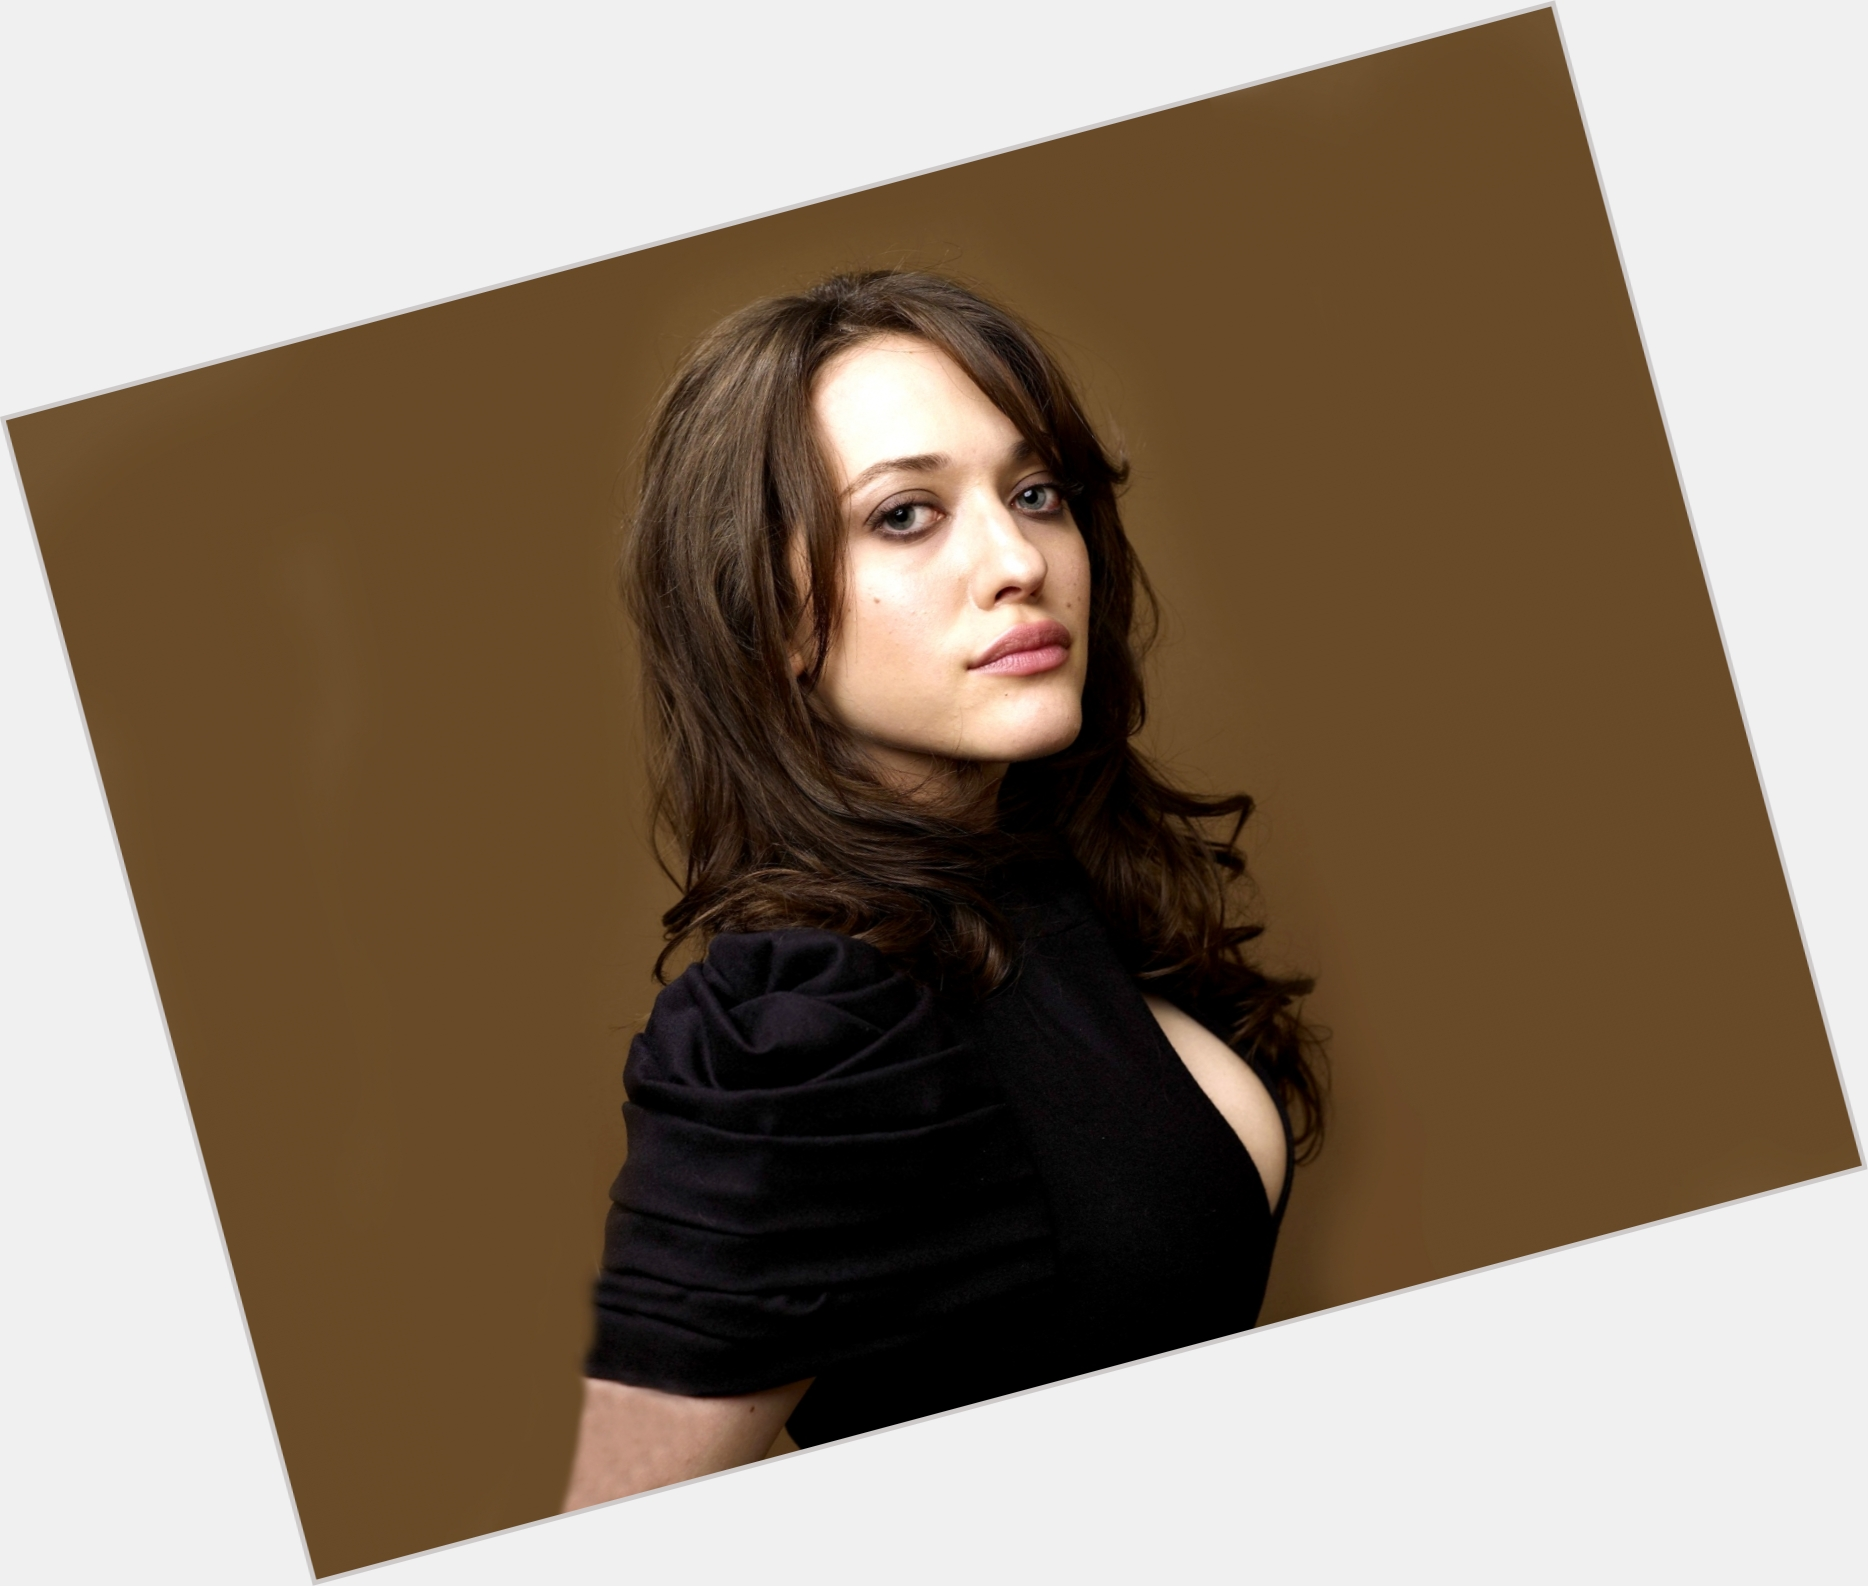 kat dennings weight before and after 2